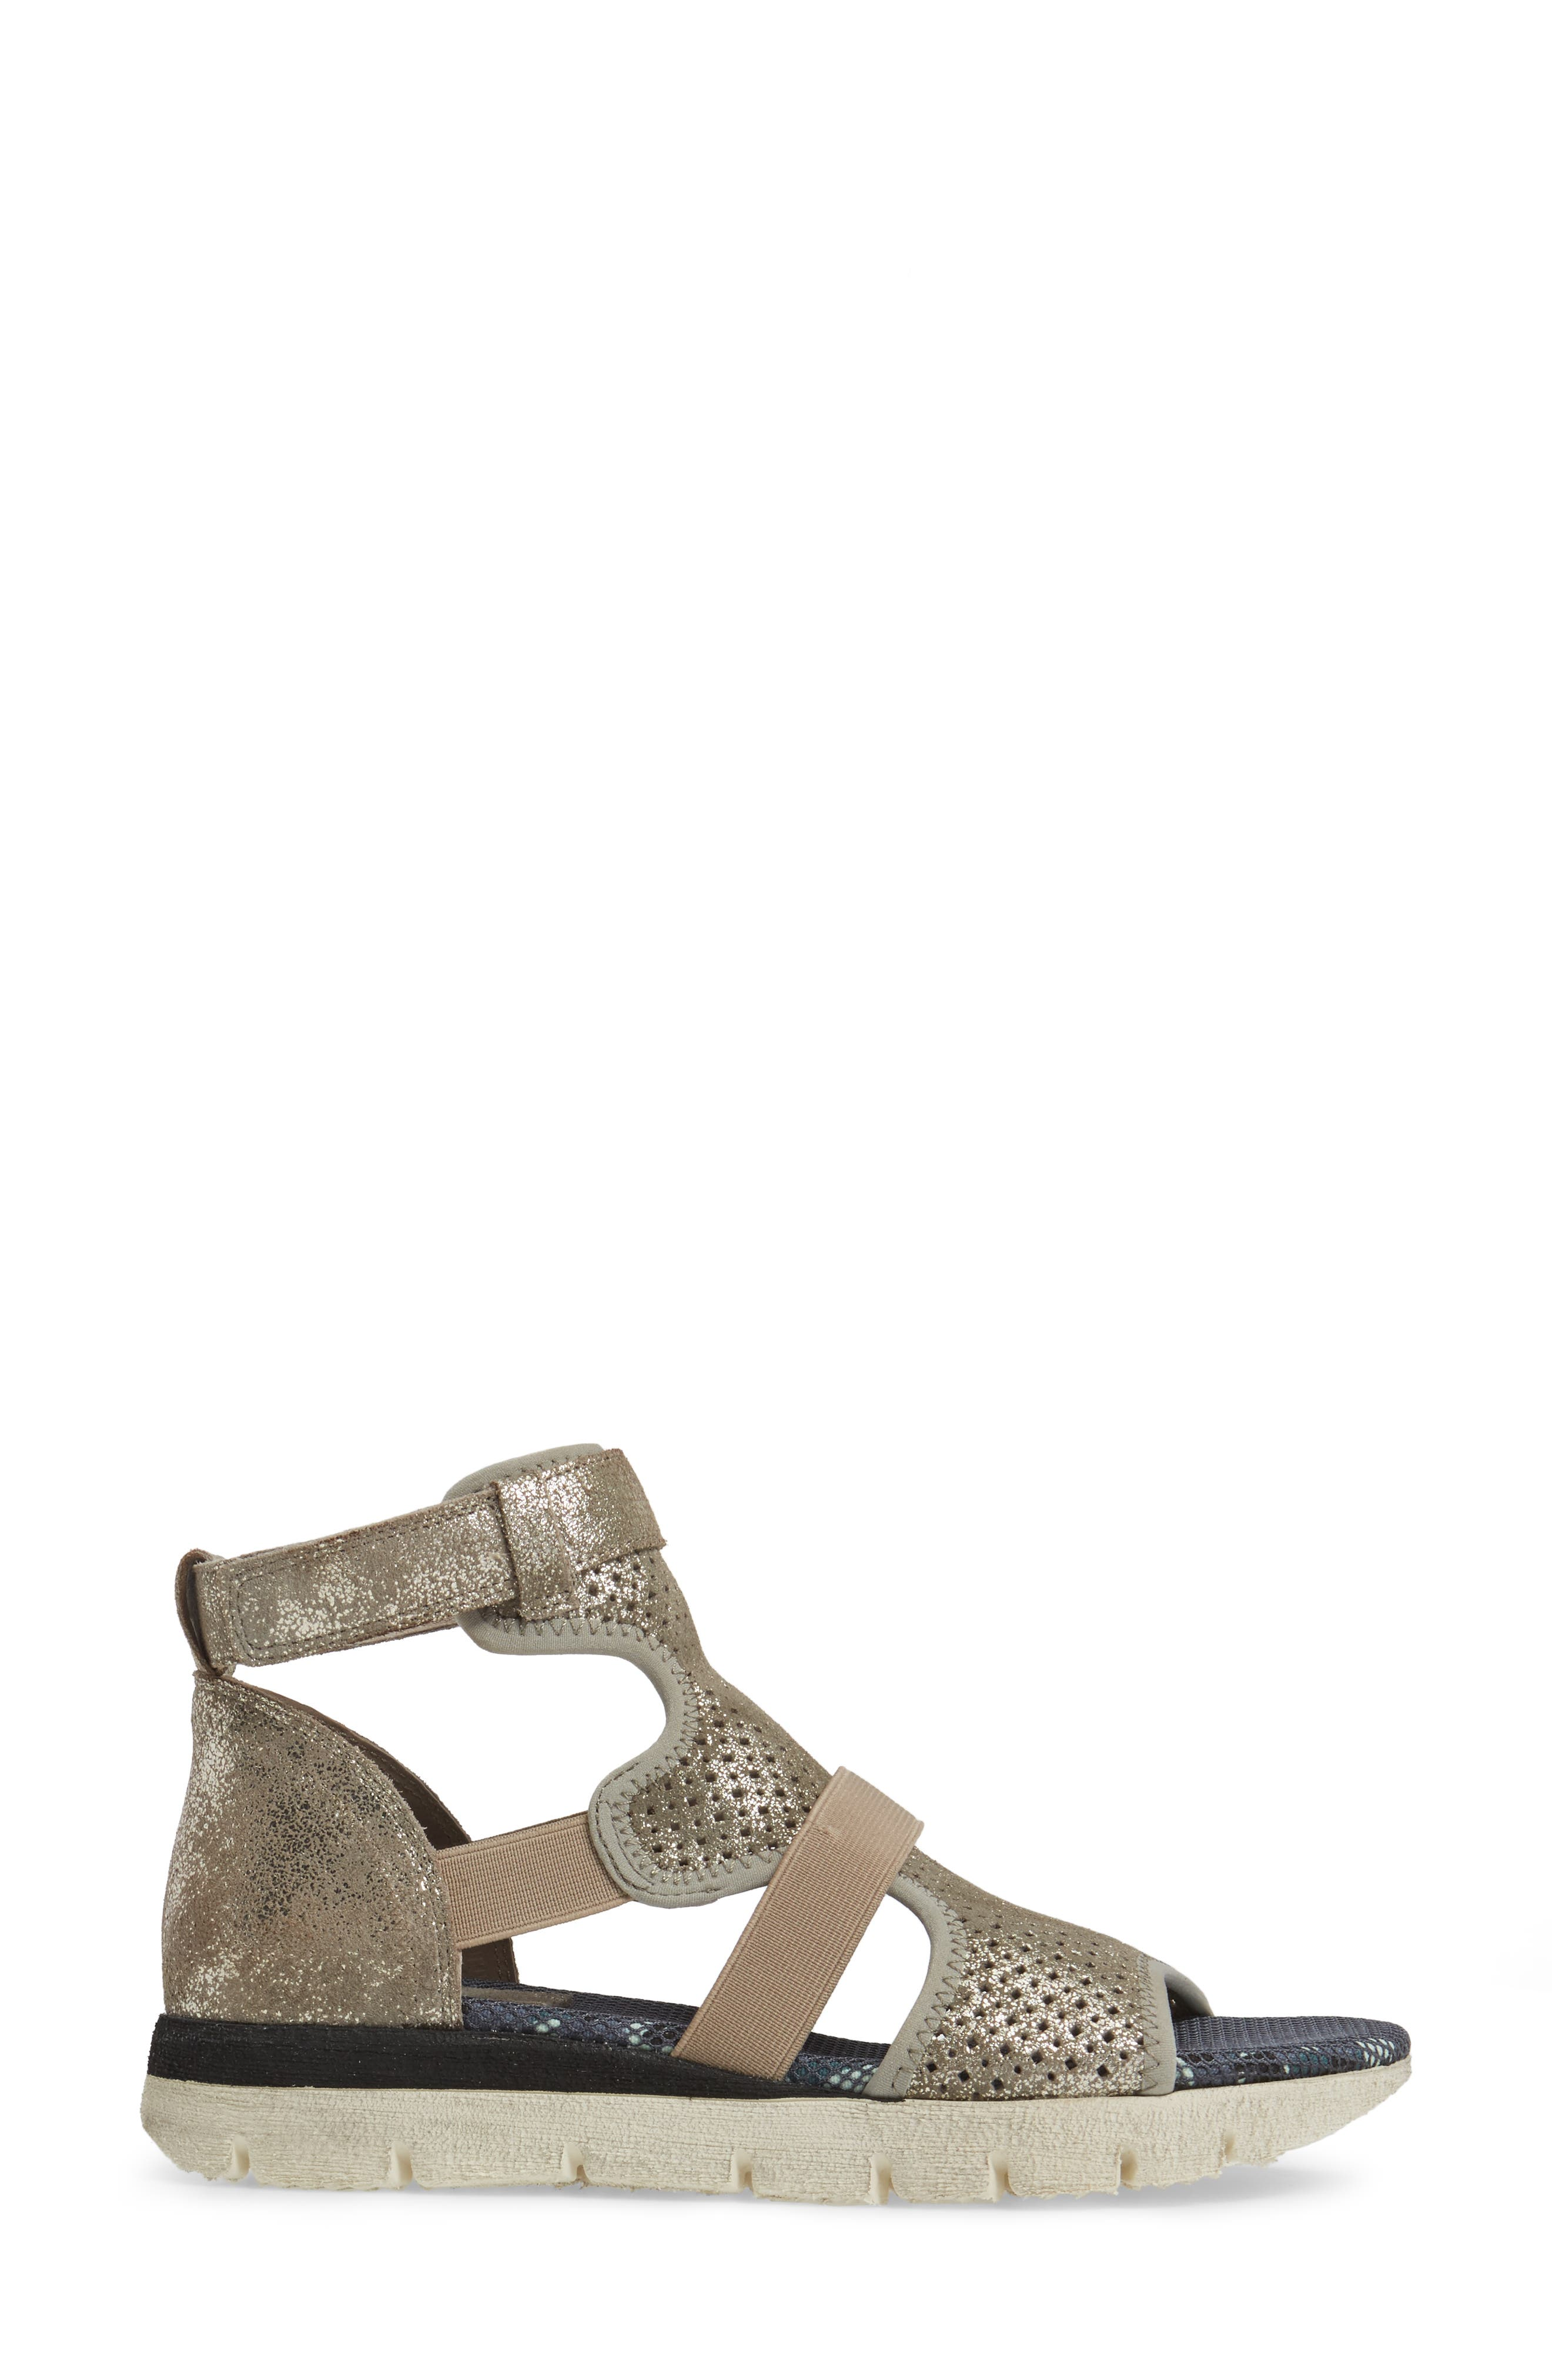 Astro Perforated Gladiator Sandal,                             Alternate thumbnail 8, color,